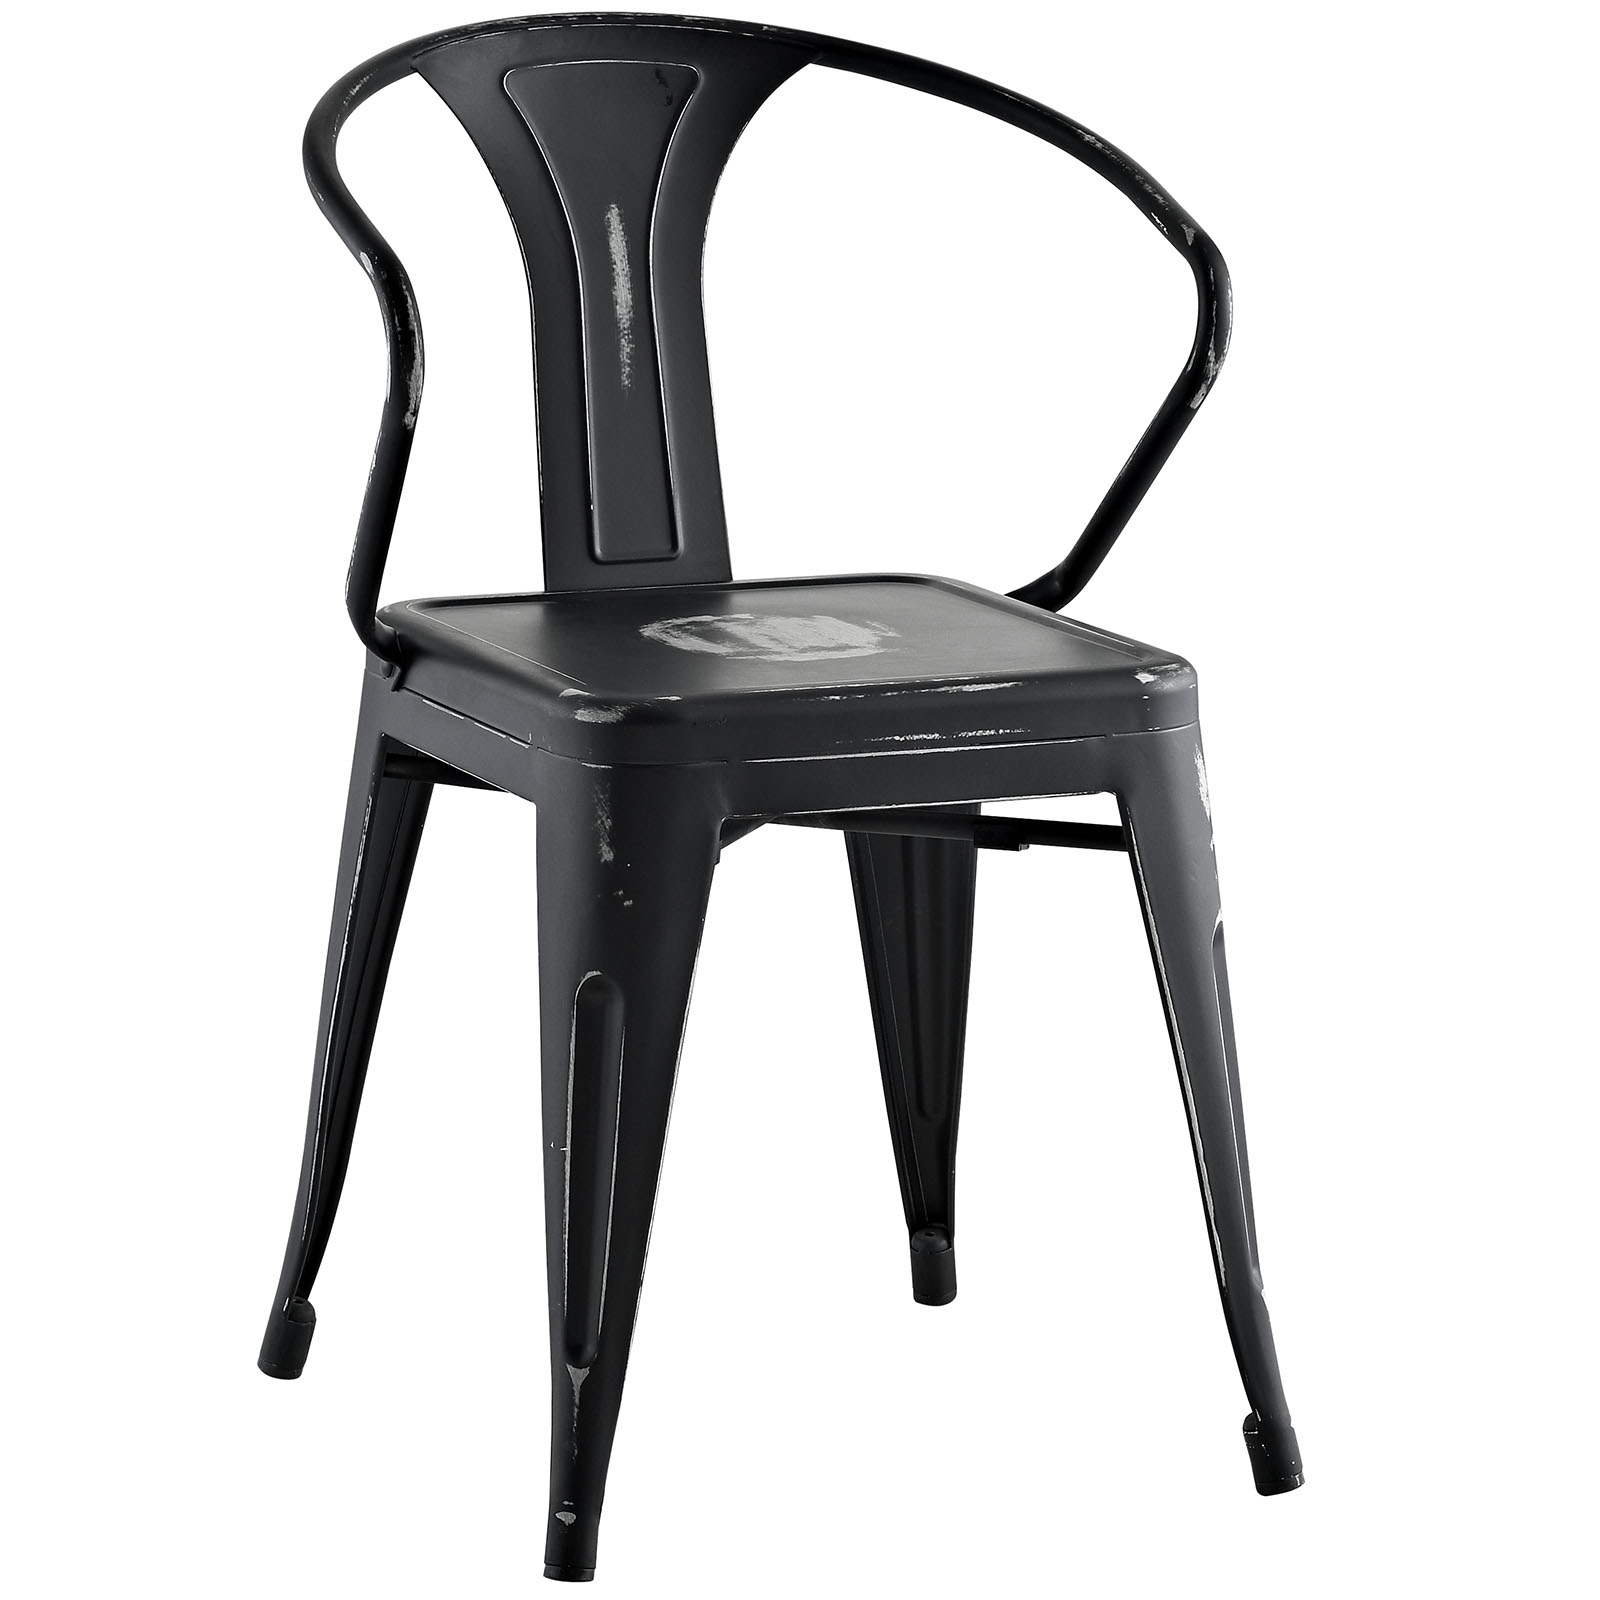 Modern Contemporary Urban Design Industrial Distressed Antique Vintage Style Kitchen Room Dining Chair, Black, Metal